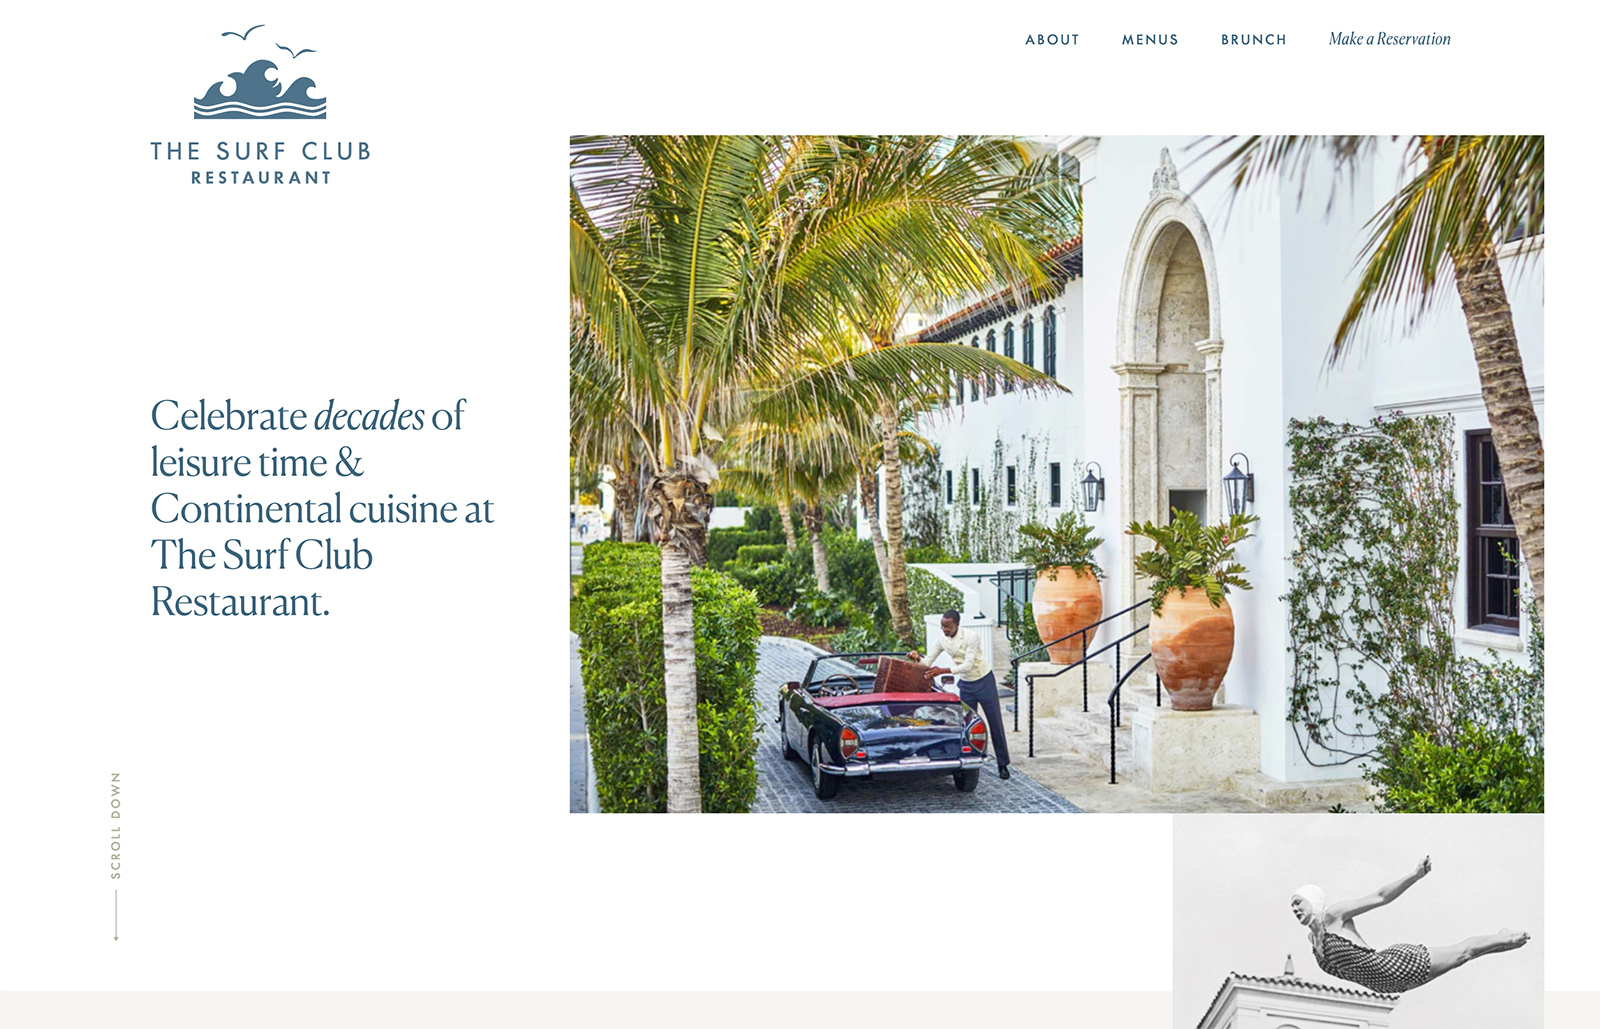 Thomas Keller Surf Club Celebrate decades of leisure time & Continental cuisine at The Surf Club Restaurant.